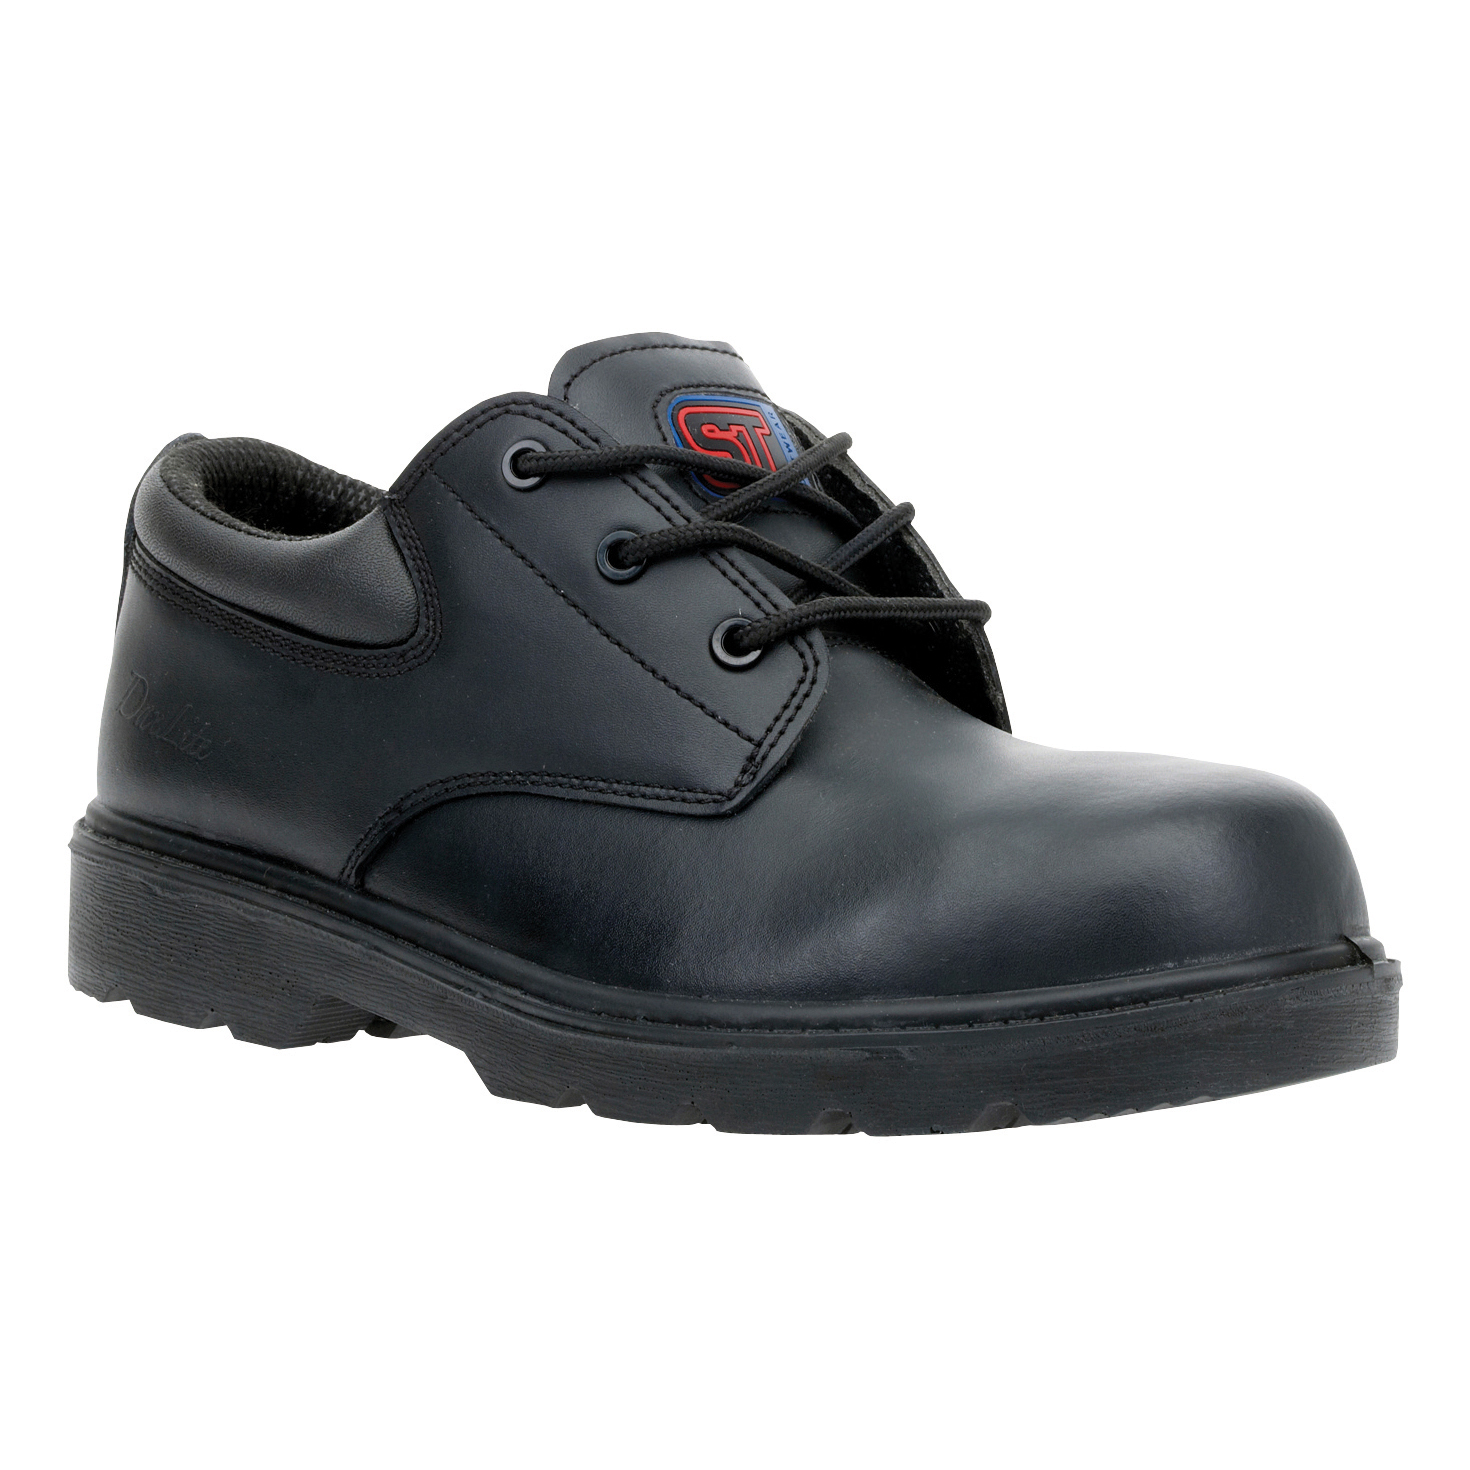 ST Dax Lite Air Comp' Shoe Metal Free Safety Toecap & Midsole Size 11 Blk Ref 90866 *Approx 3 Day L/Time*